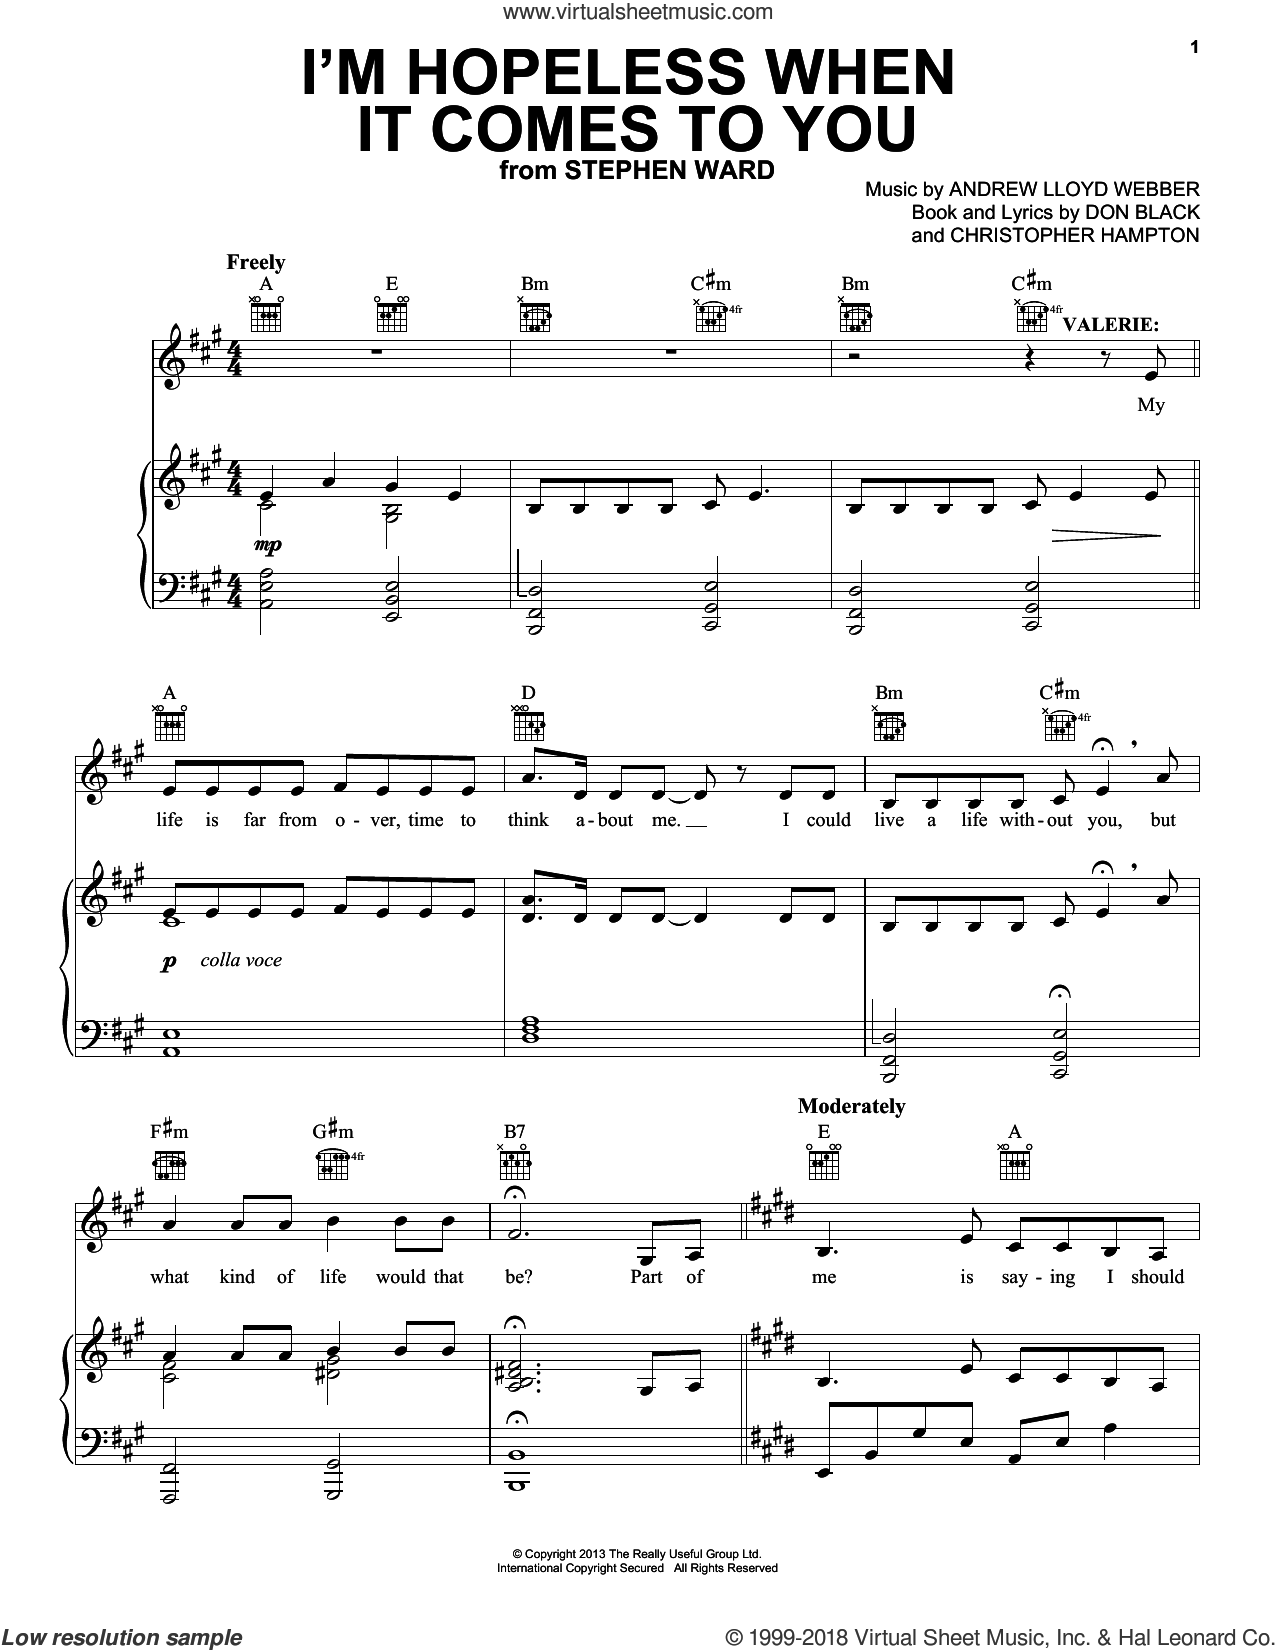 I'm Hopeless When It Comes To You sheet music for voice, piano or guitar by Don Black, Andrew Lloyd Webber and Christopher Hampton. Score Image Preview.